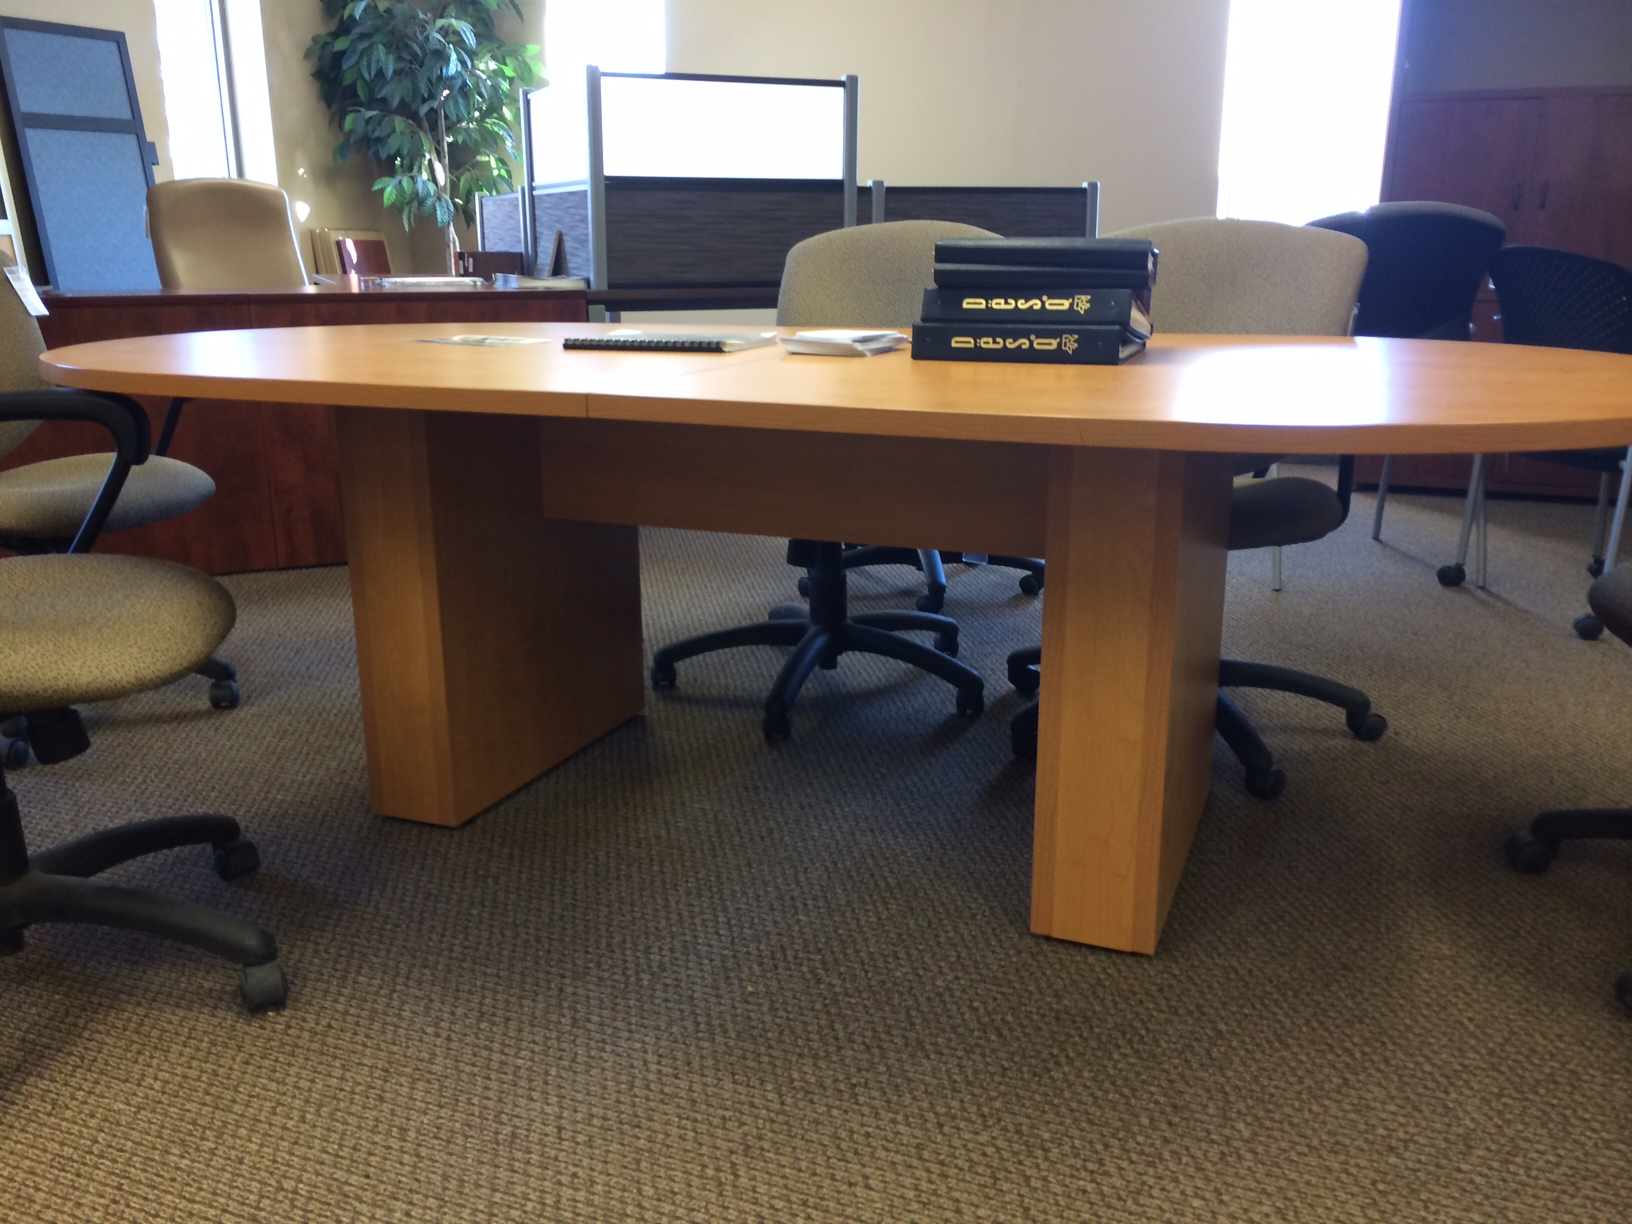 Conference Table Legs